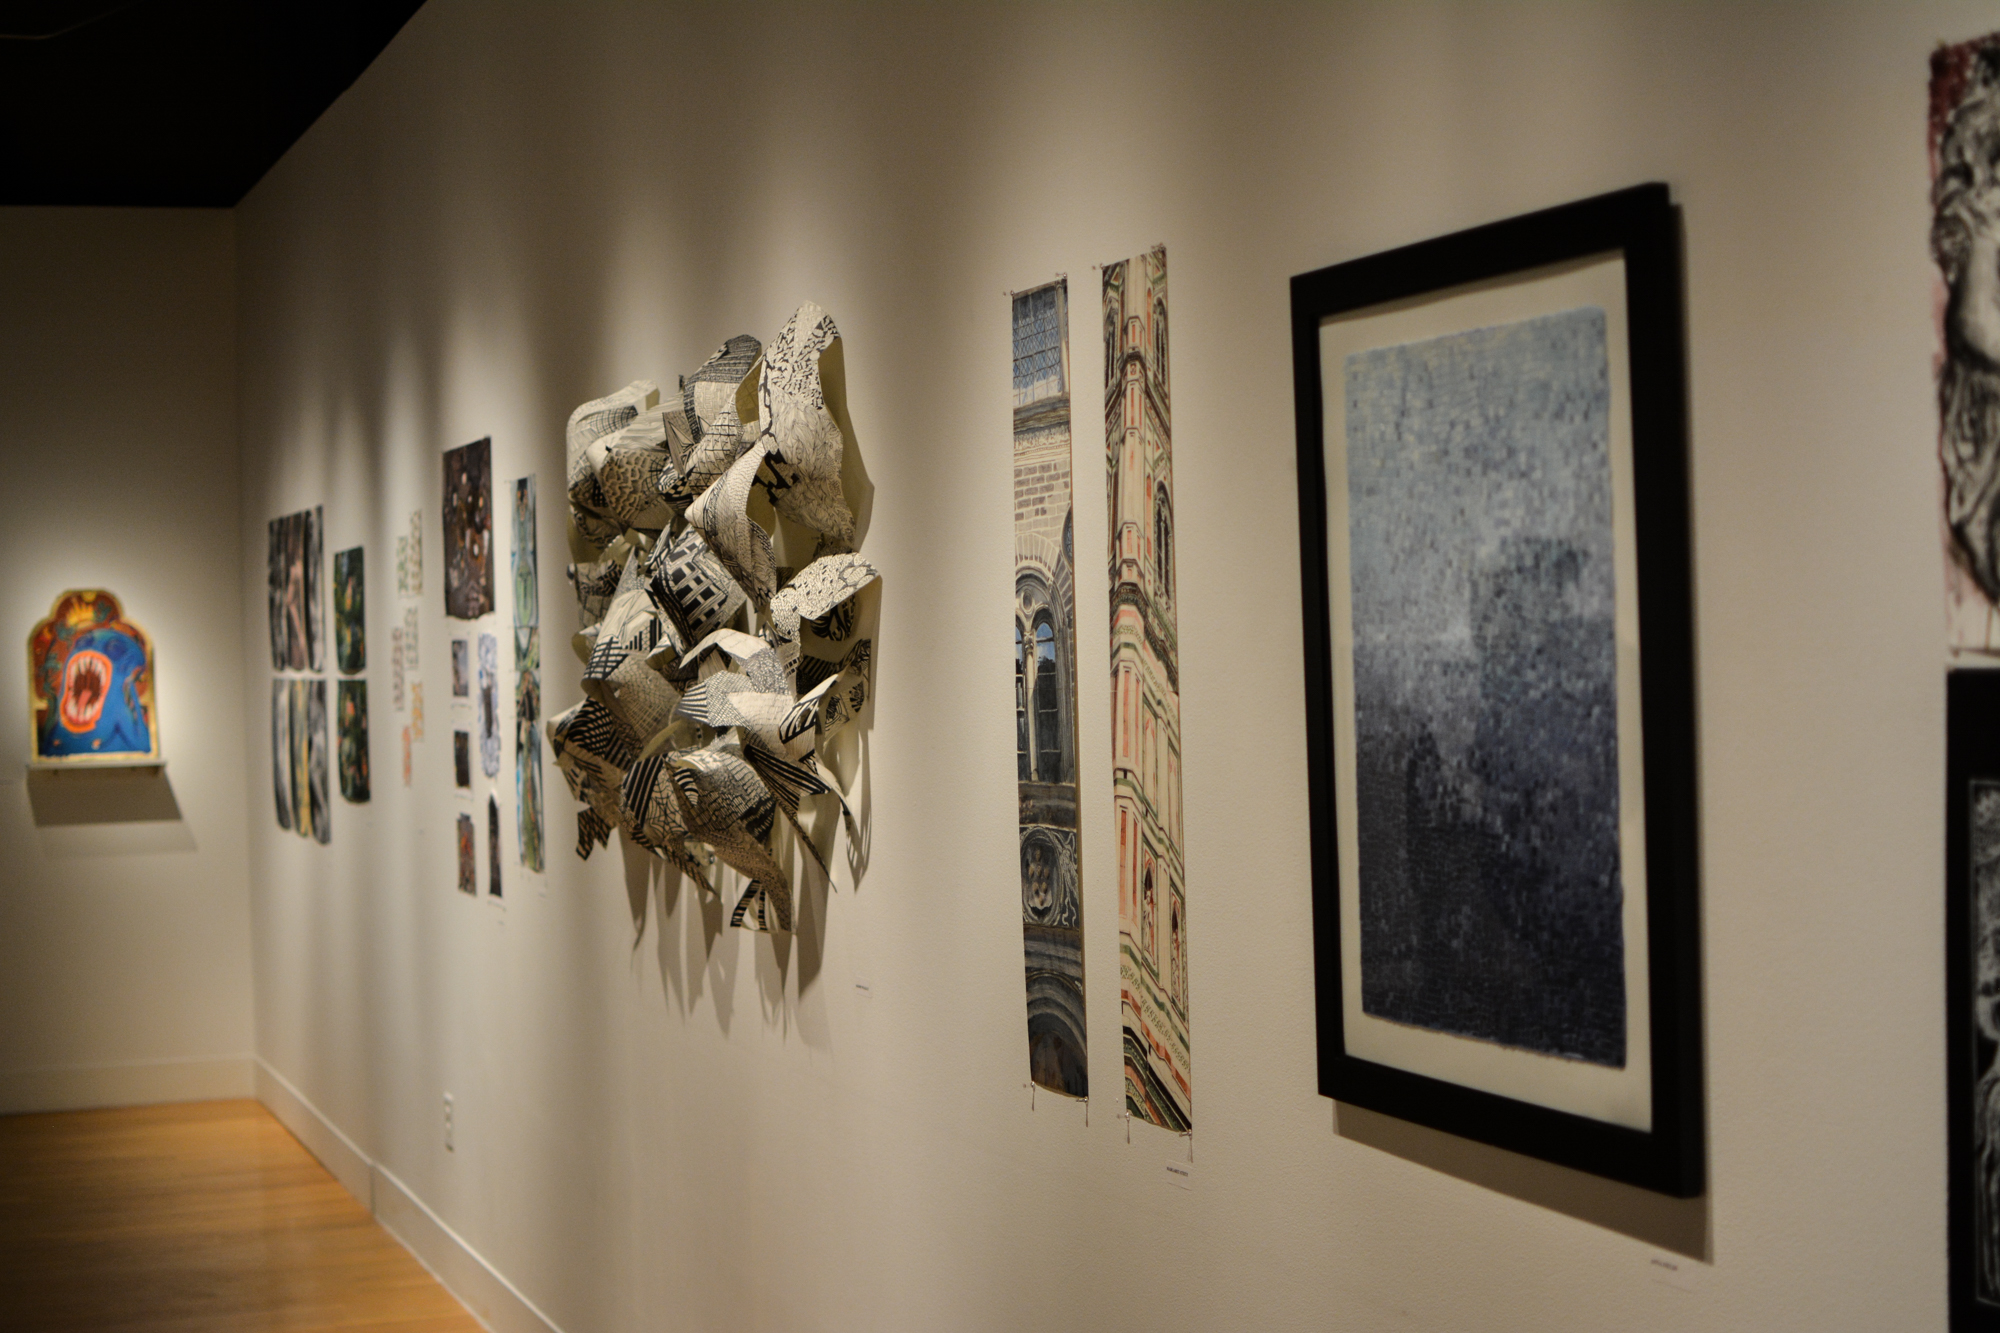 Art pieces created by students in the Department of Art and Art History's study abroad program were proudly displayed to the public in the Visual Art Center on campus.